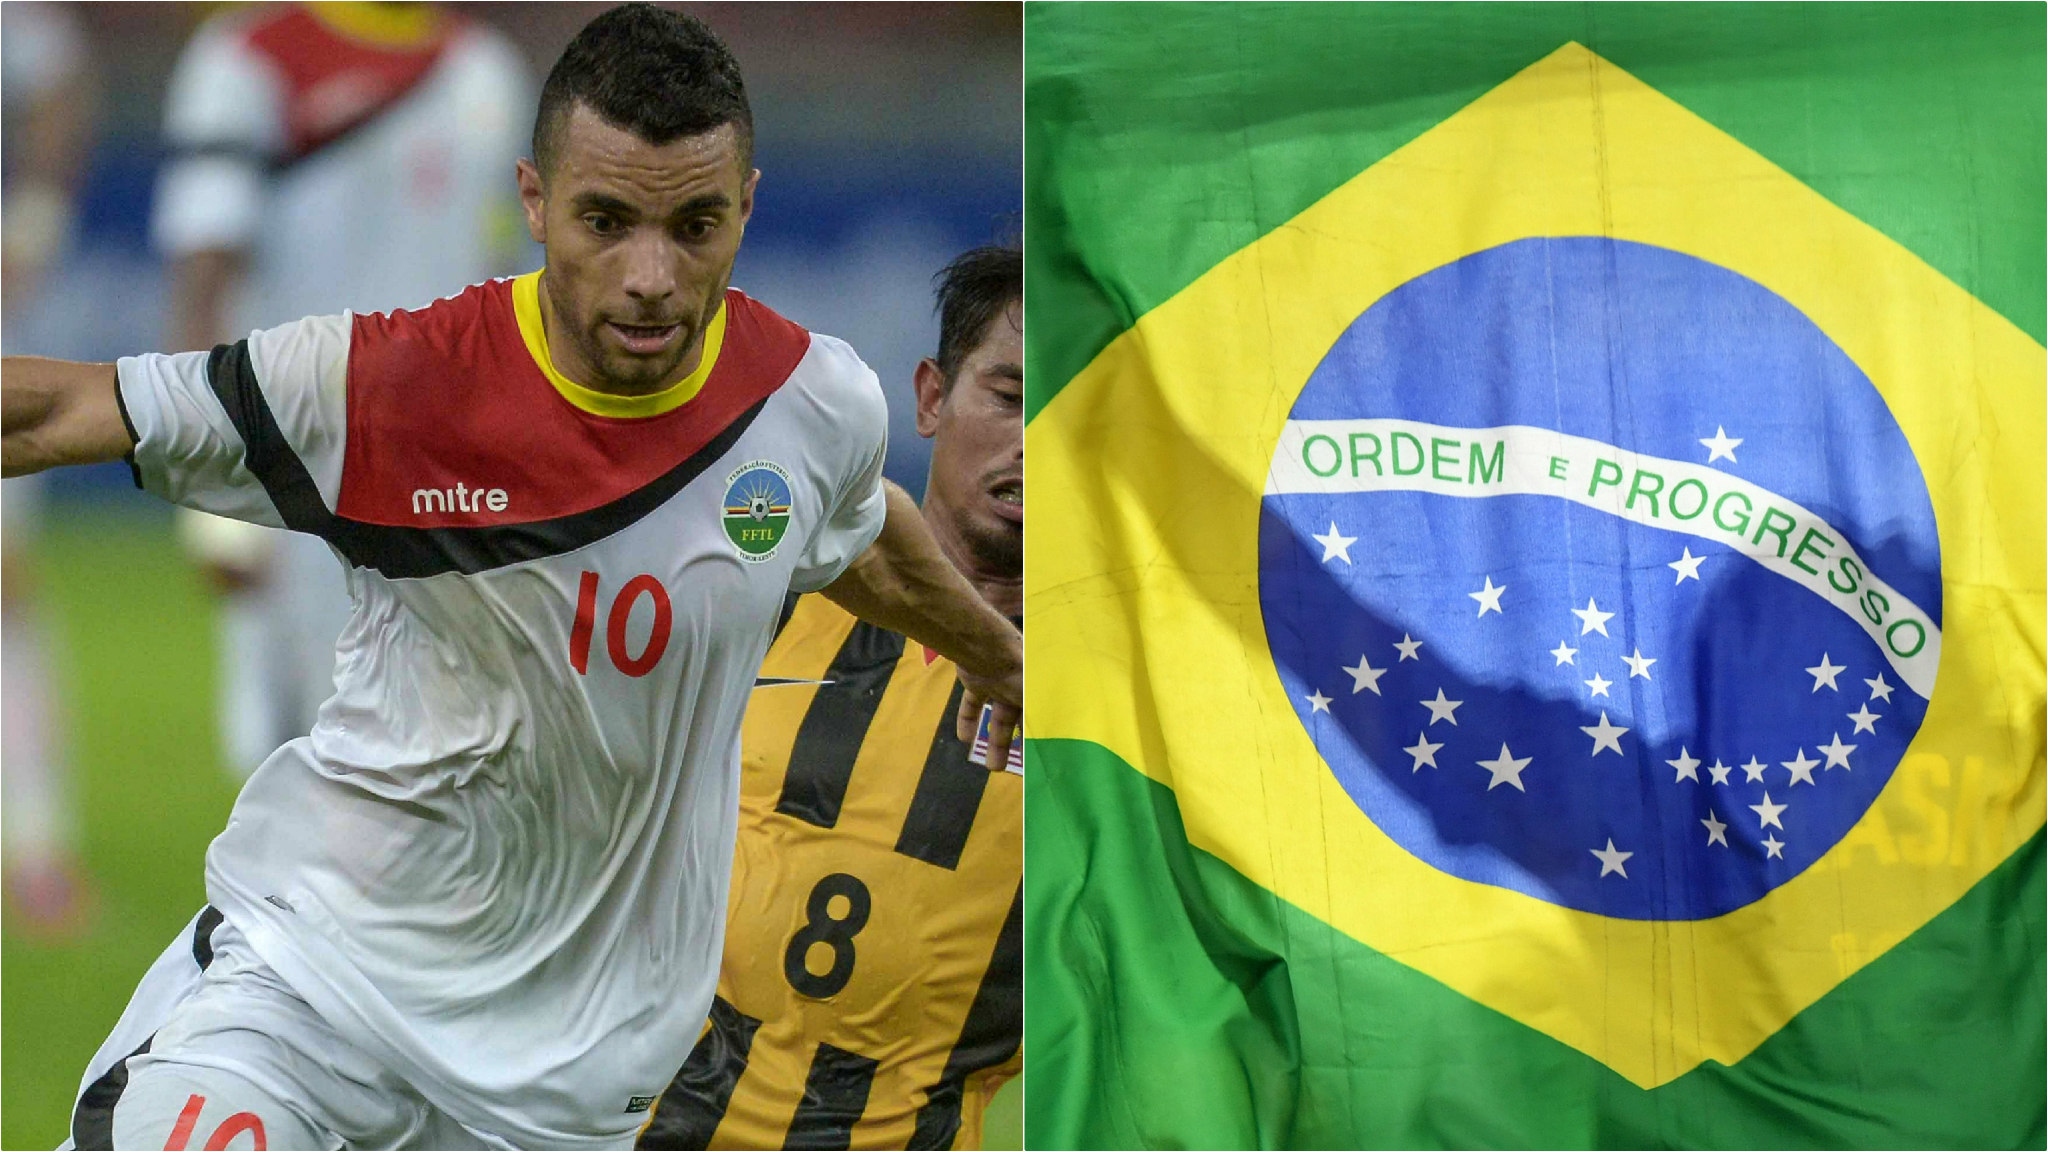 Doctored documents & false family ties - East Timor's Brazilian footballers scam